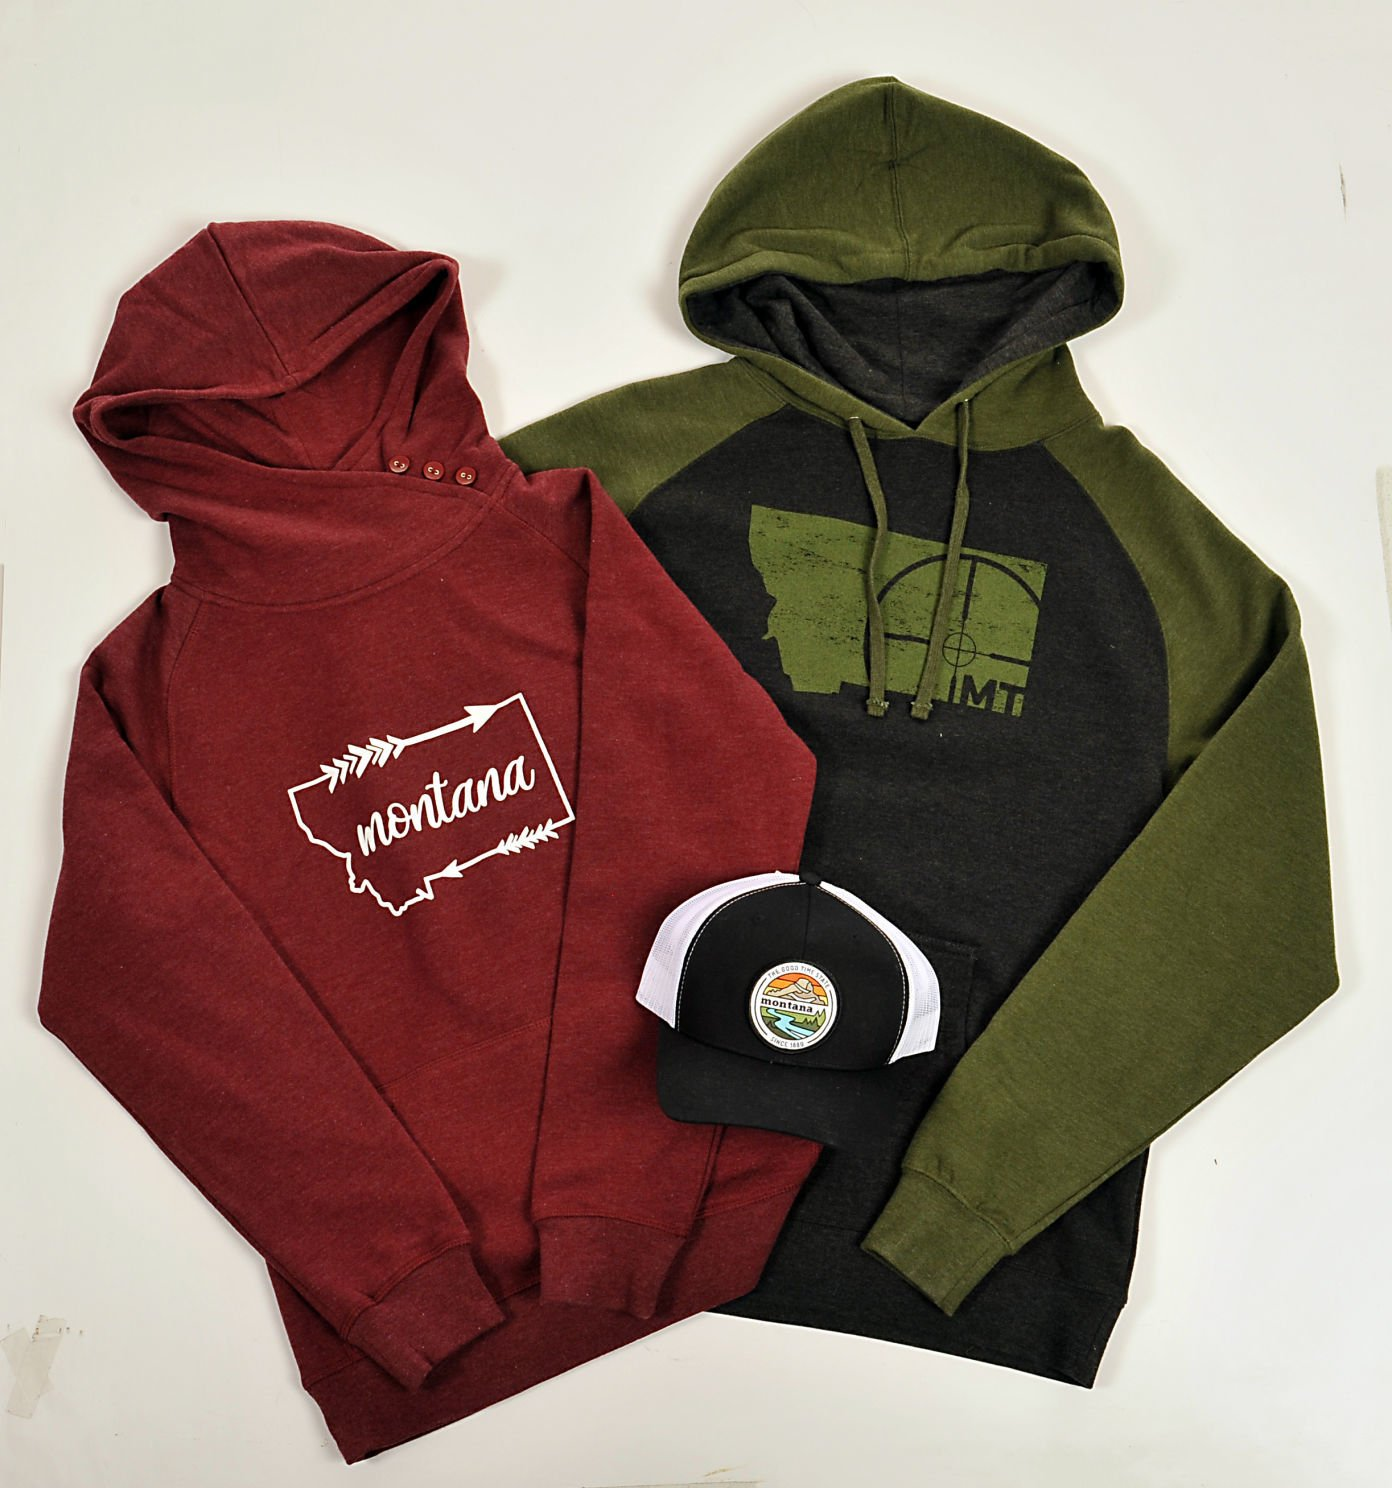 4-rth Limited Edition Crossover Fleece Hoodie